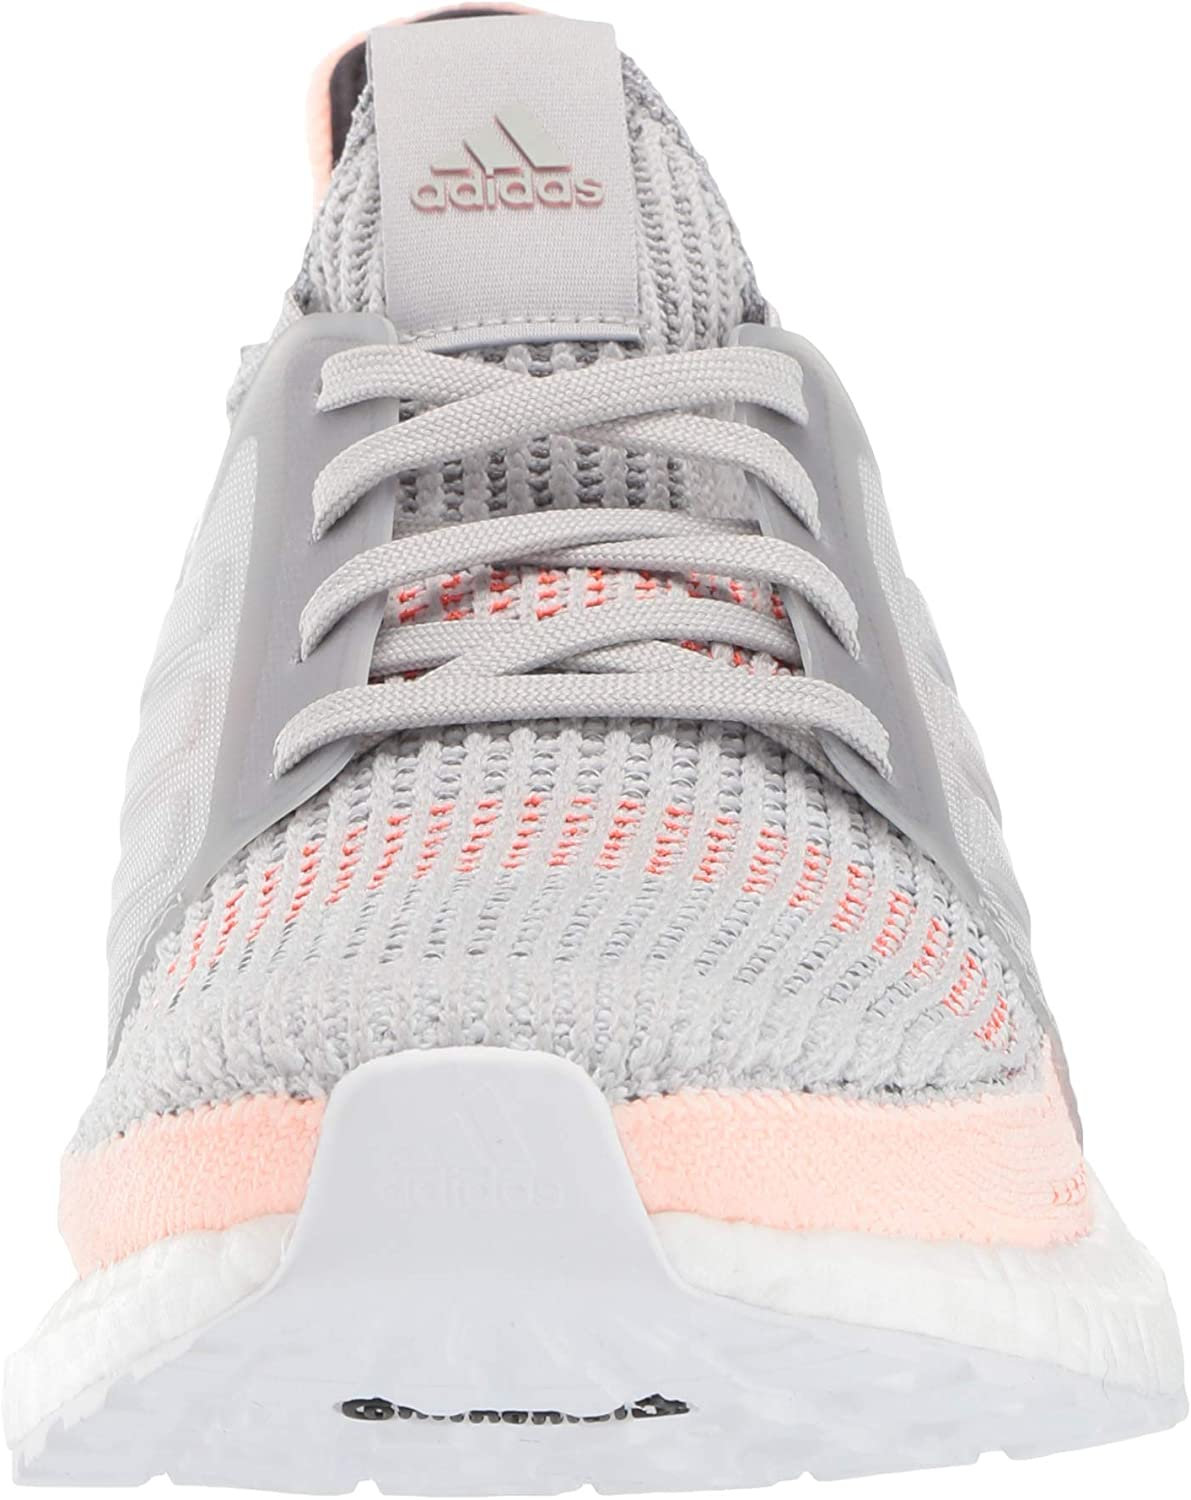 adidas Women's Ultraboost 19 Running Shoe Grey/Clear Orange/True Orange